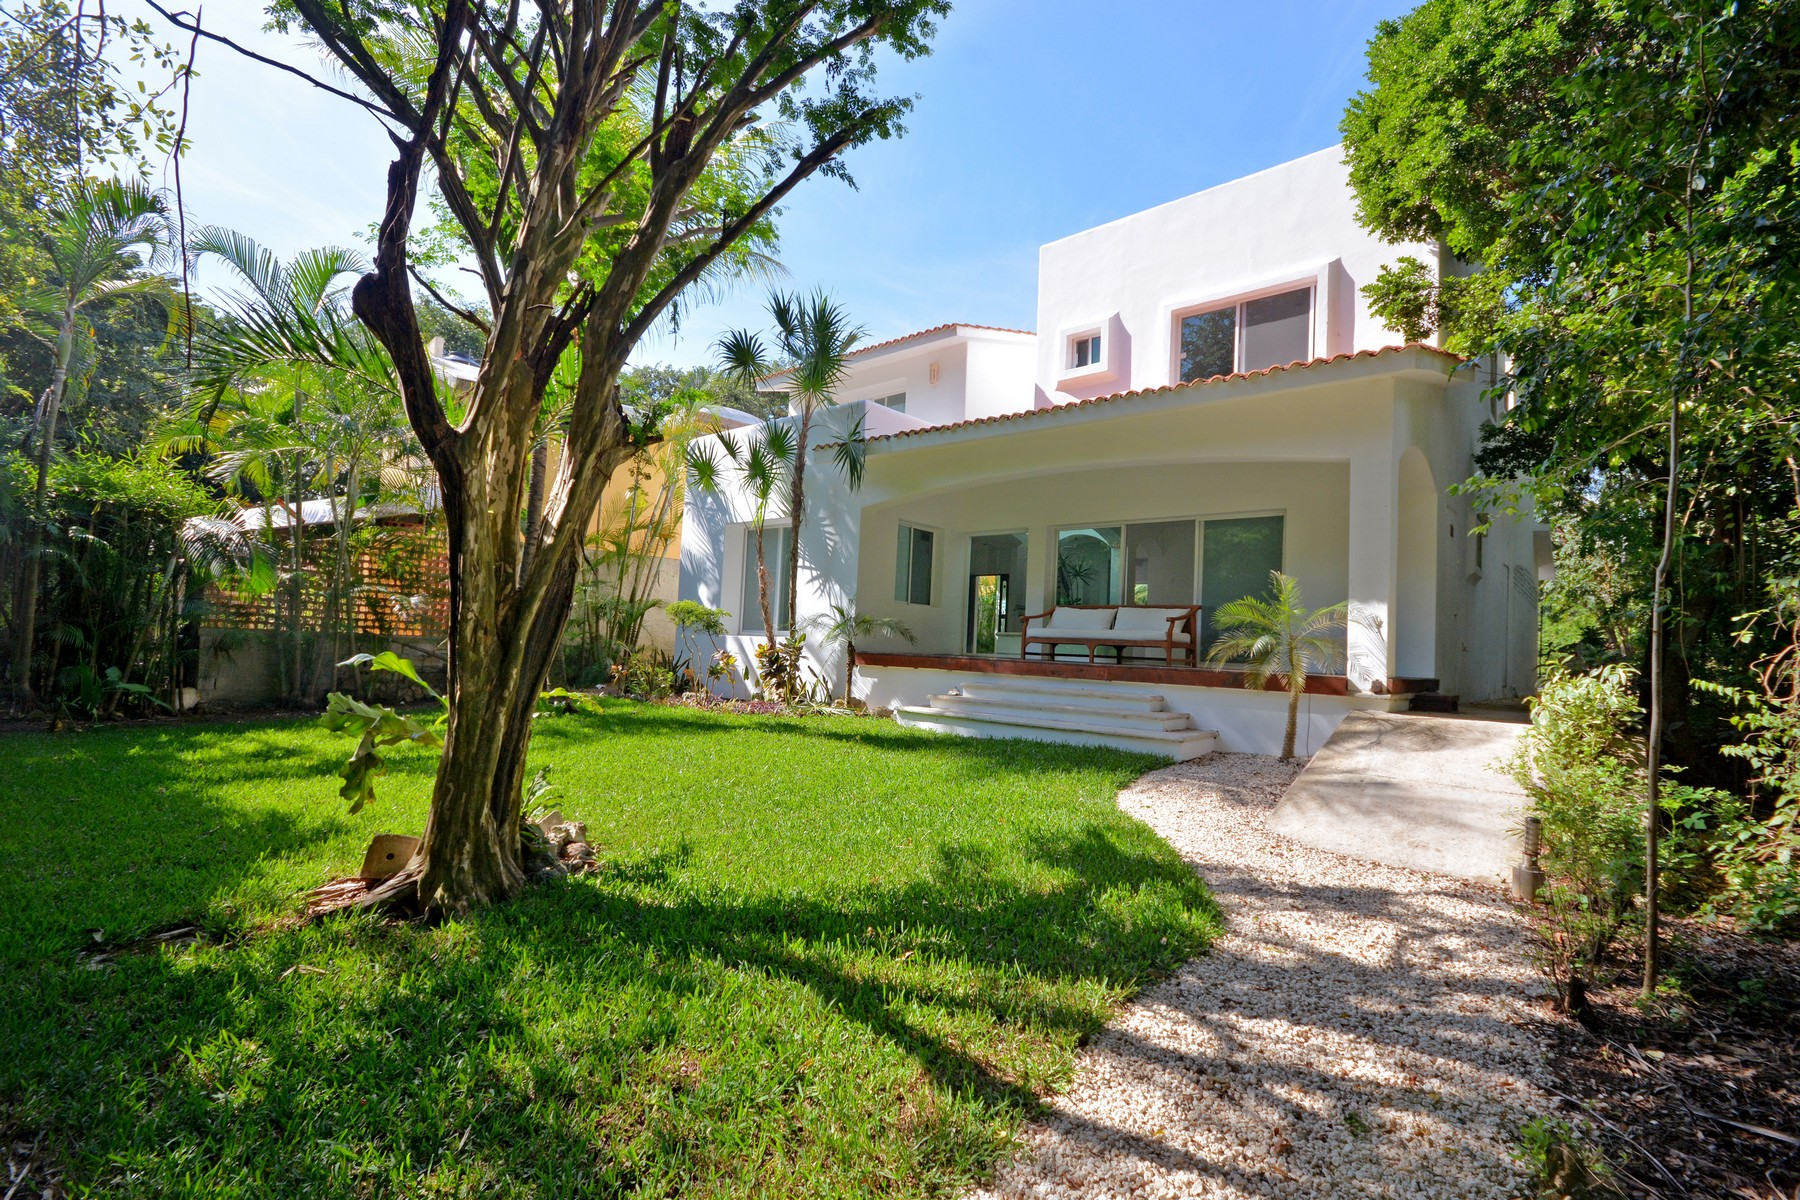 Single Family Home for Sale at CASA MONIQUE Club Real, Playacar Fase II Lote 259 Playa Del Carmen, Quintana Roo 77710 Mexico